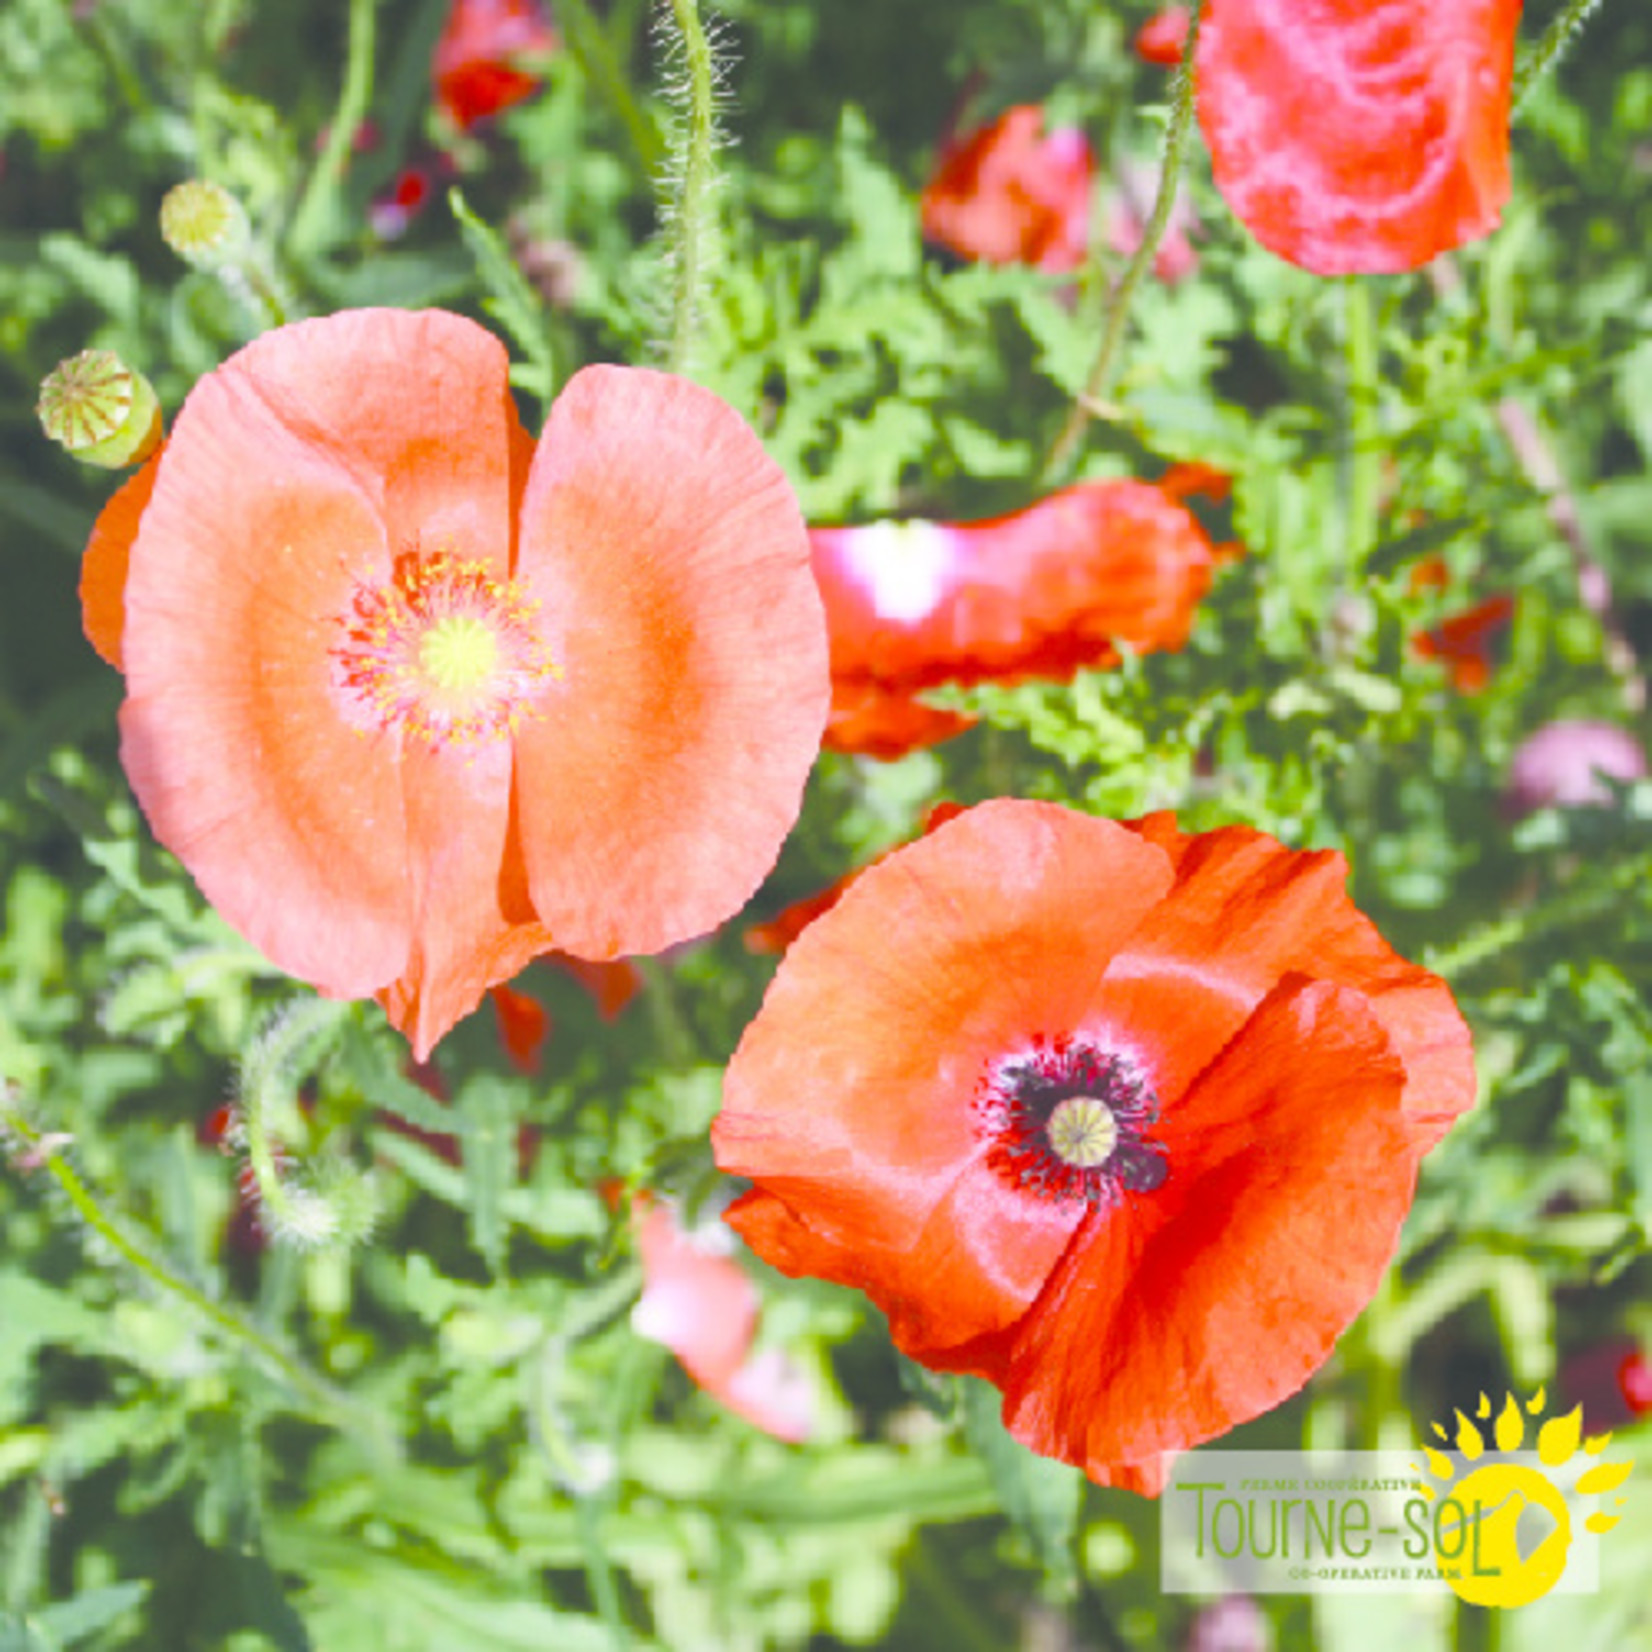 Tourne-Sol Corn poppy mix